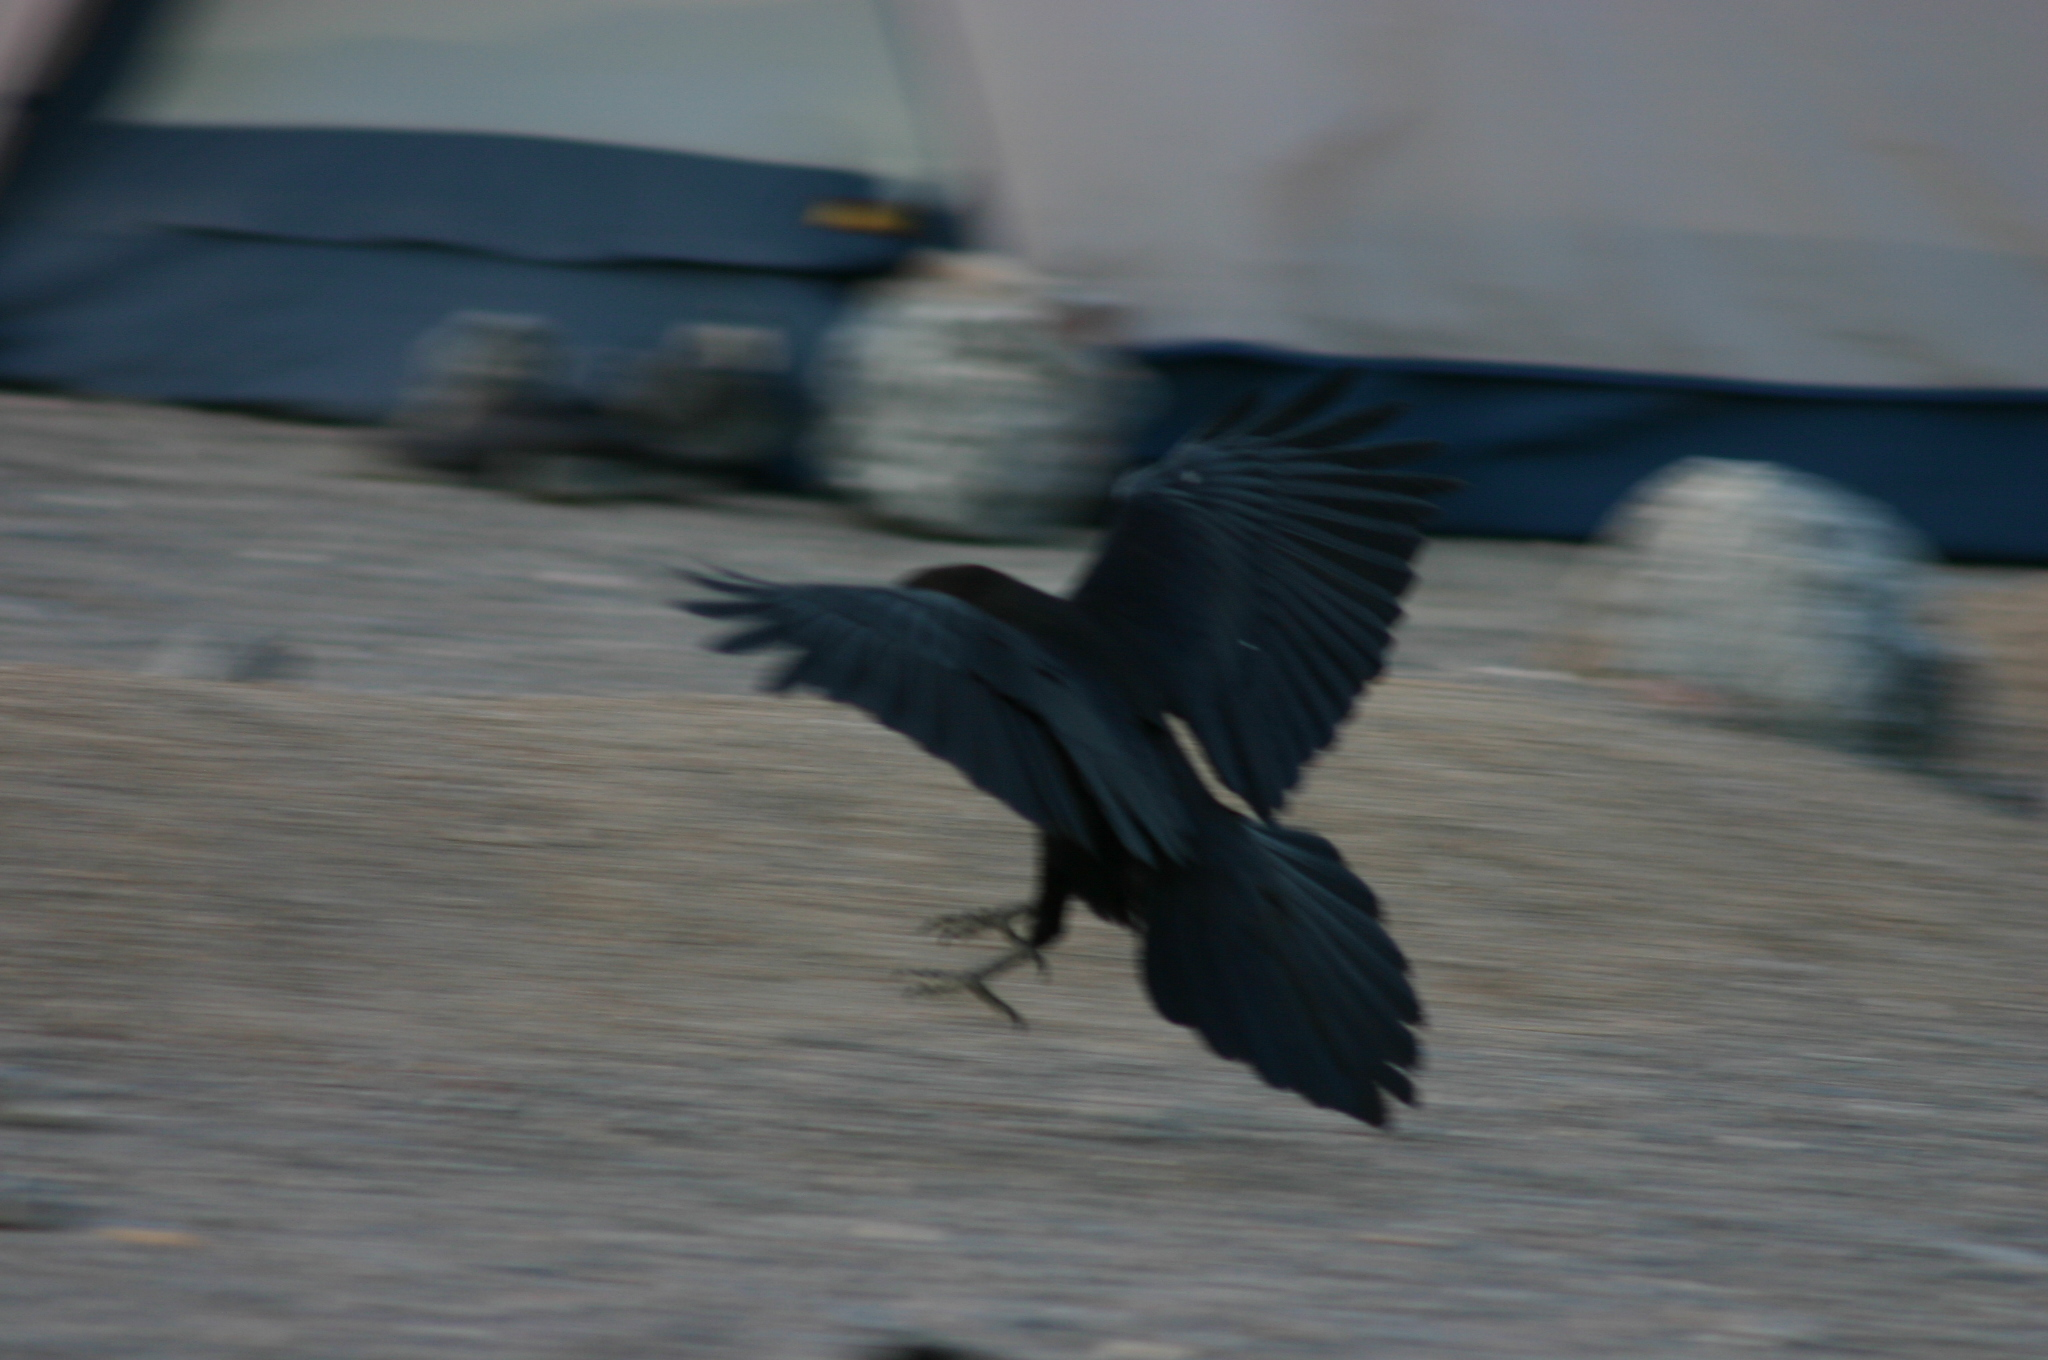 http://upload.wikimedia.org/wikipedia/commons/4/46/Black_Bird_Landing_as_Seen_from_the_Back.jpg